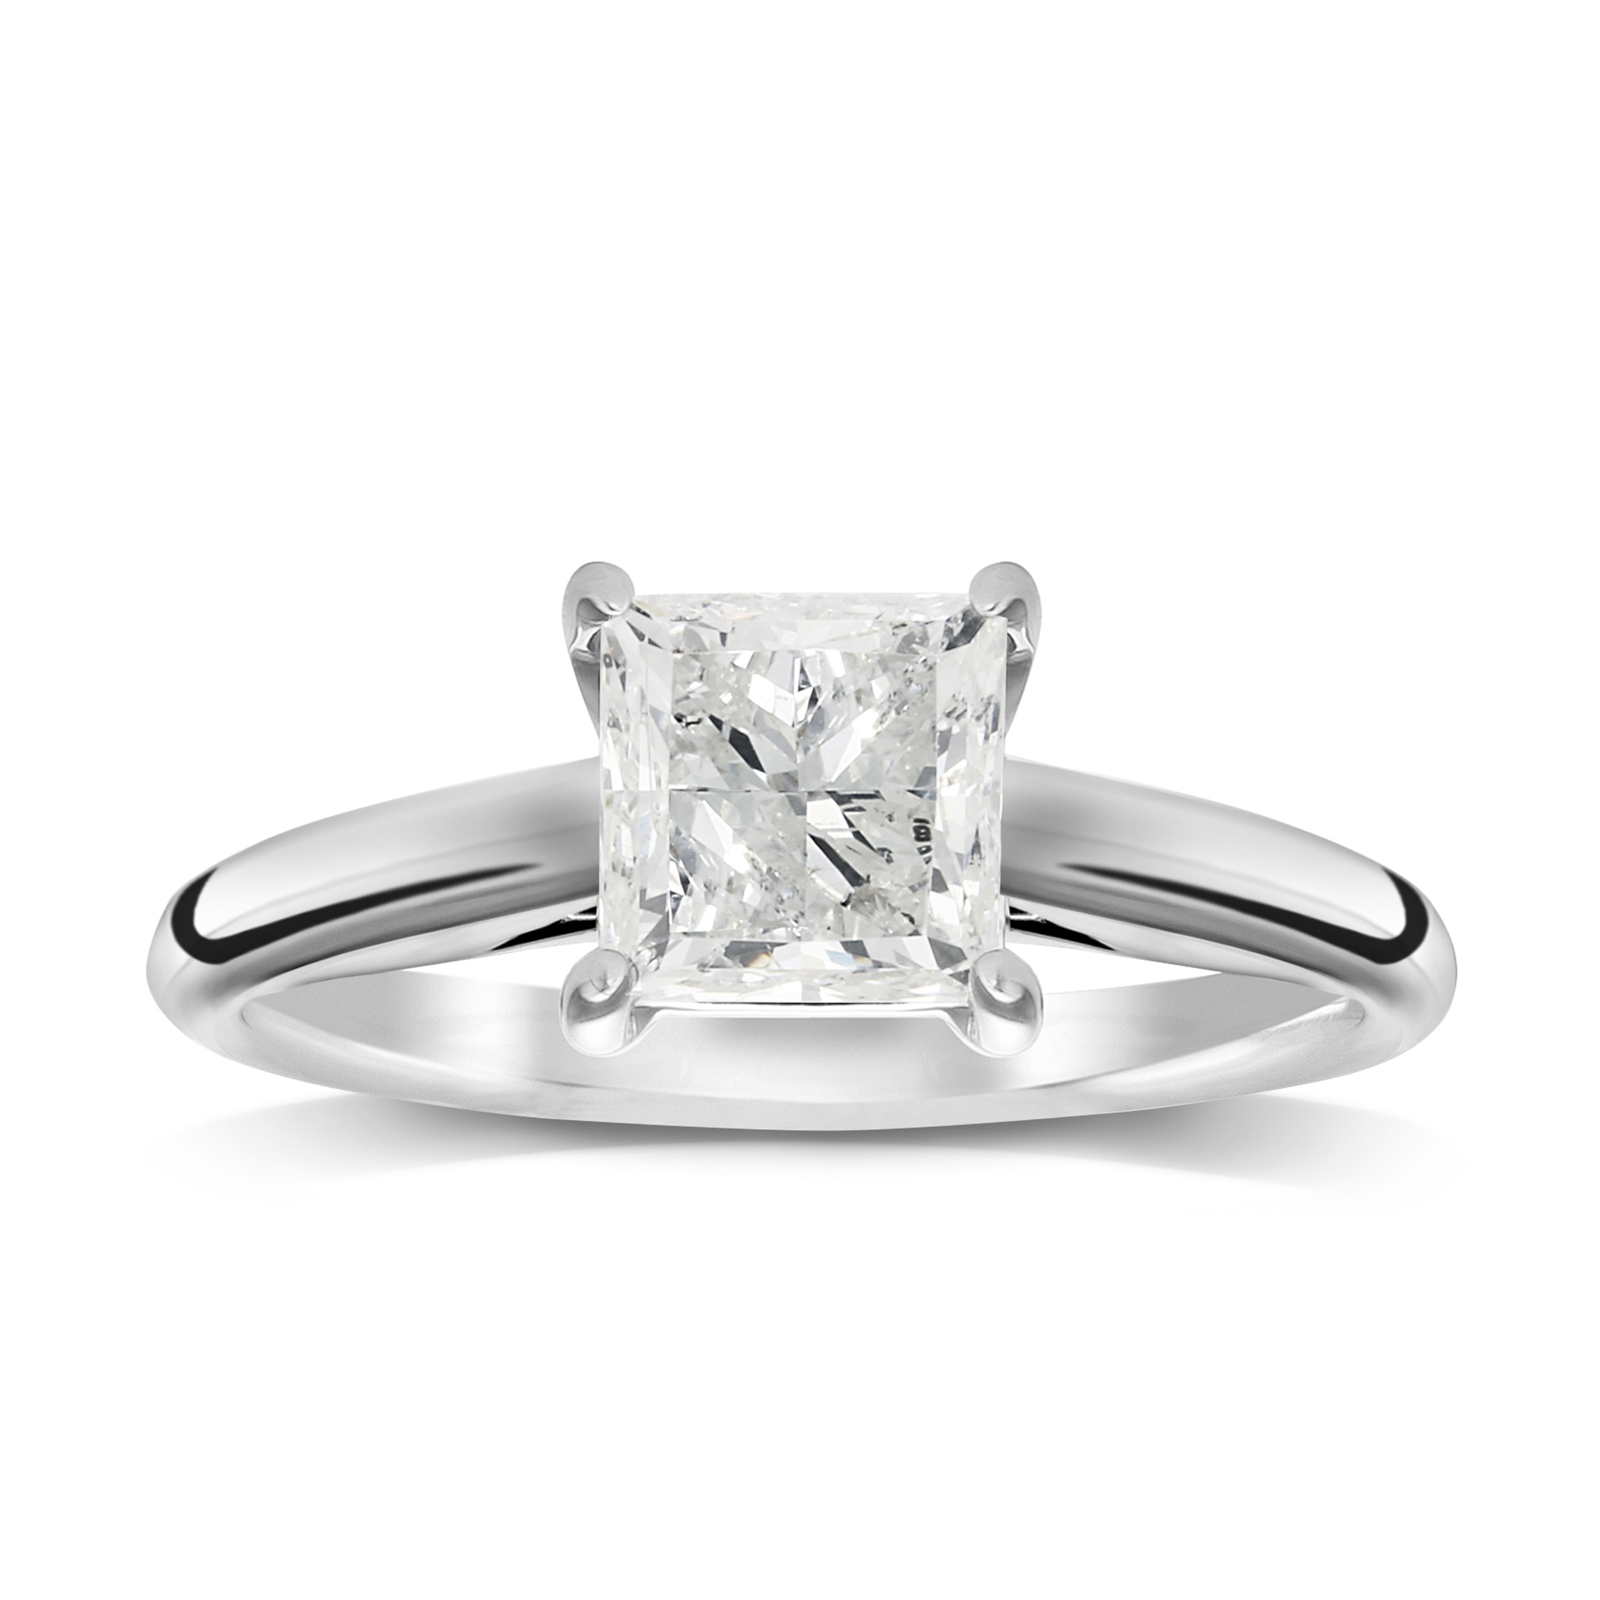 18ct White Gold 1.00ct Princess Cut Solitaire Ring - Ring Size J